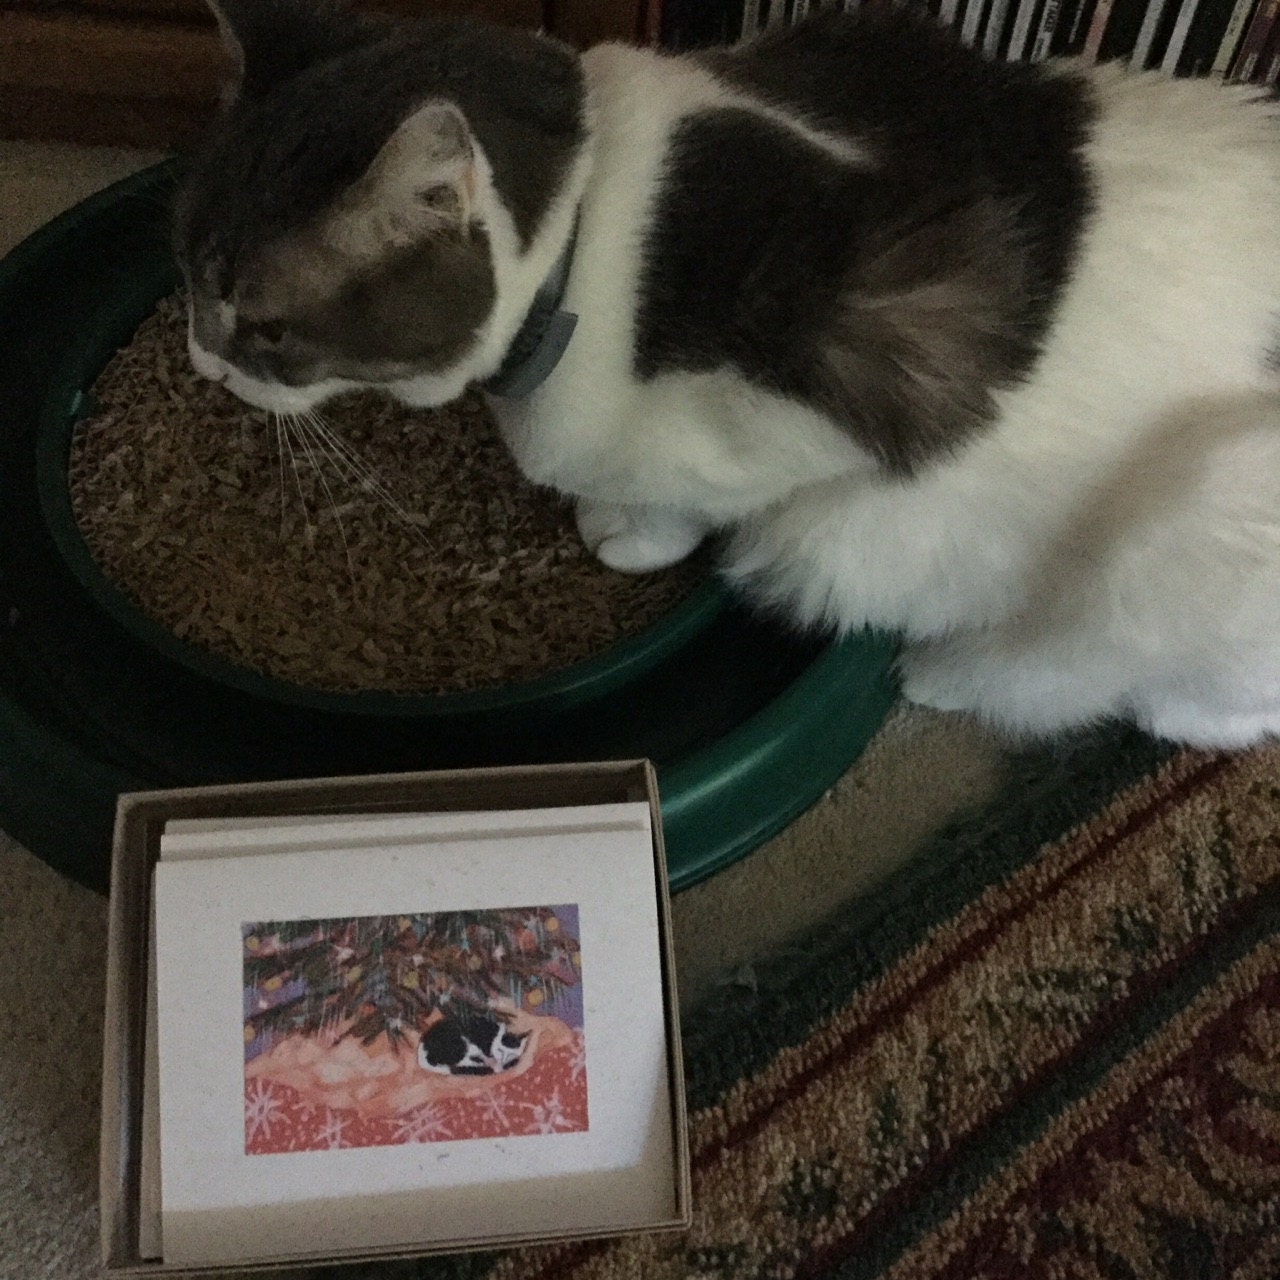 Rita Iverson added a photo of their purchase